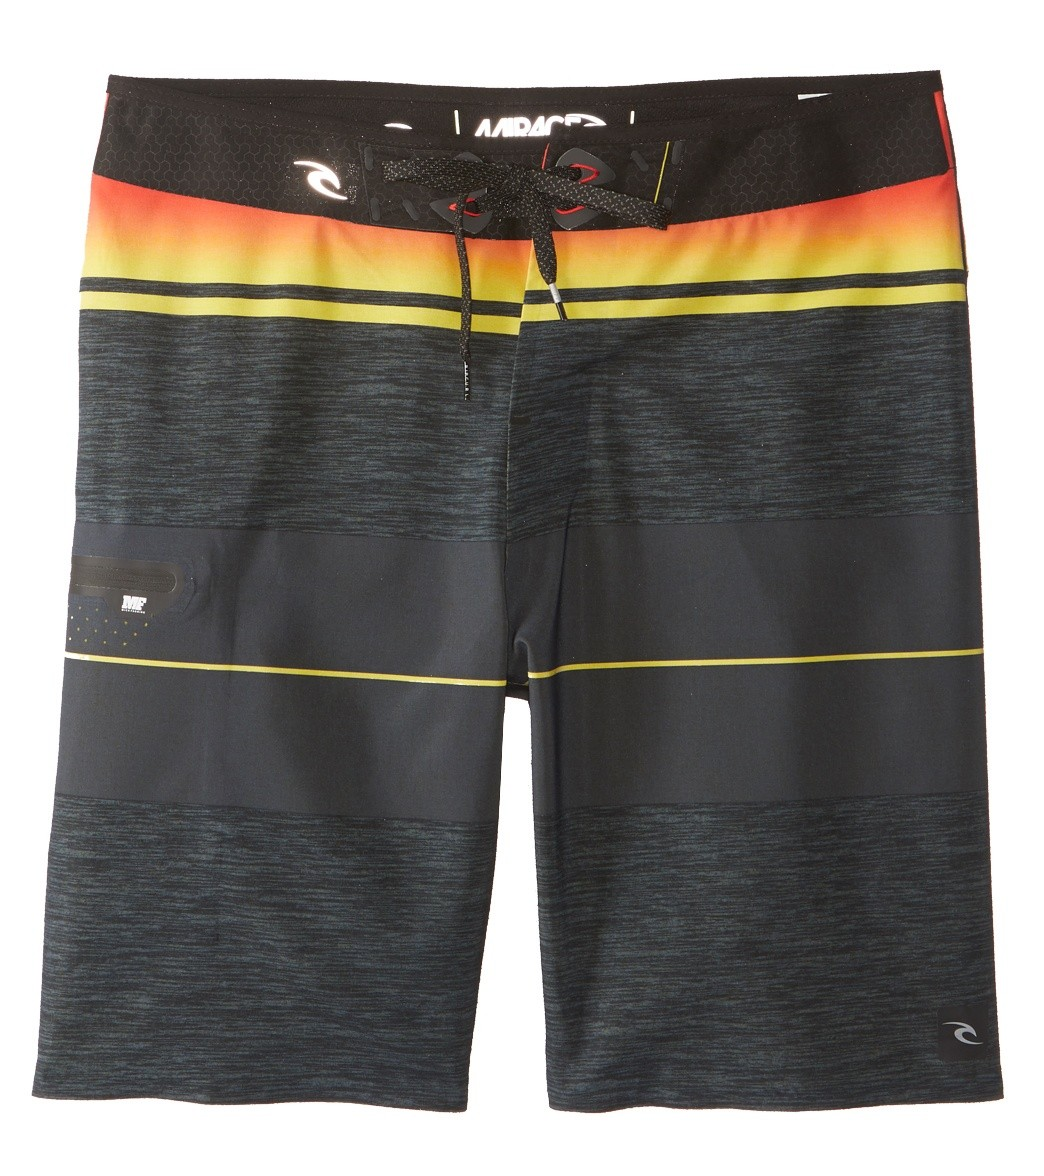 1e73c38694 Rip Curl Men's Mirage MF Eclipse ULT Boardshort at SwimOutlet.com - Free  Shipping